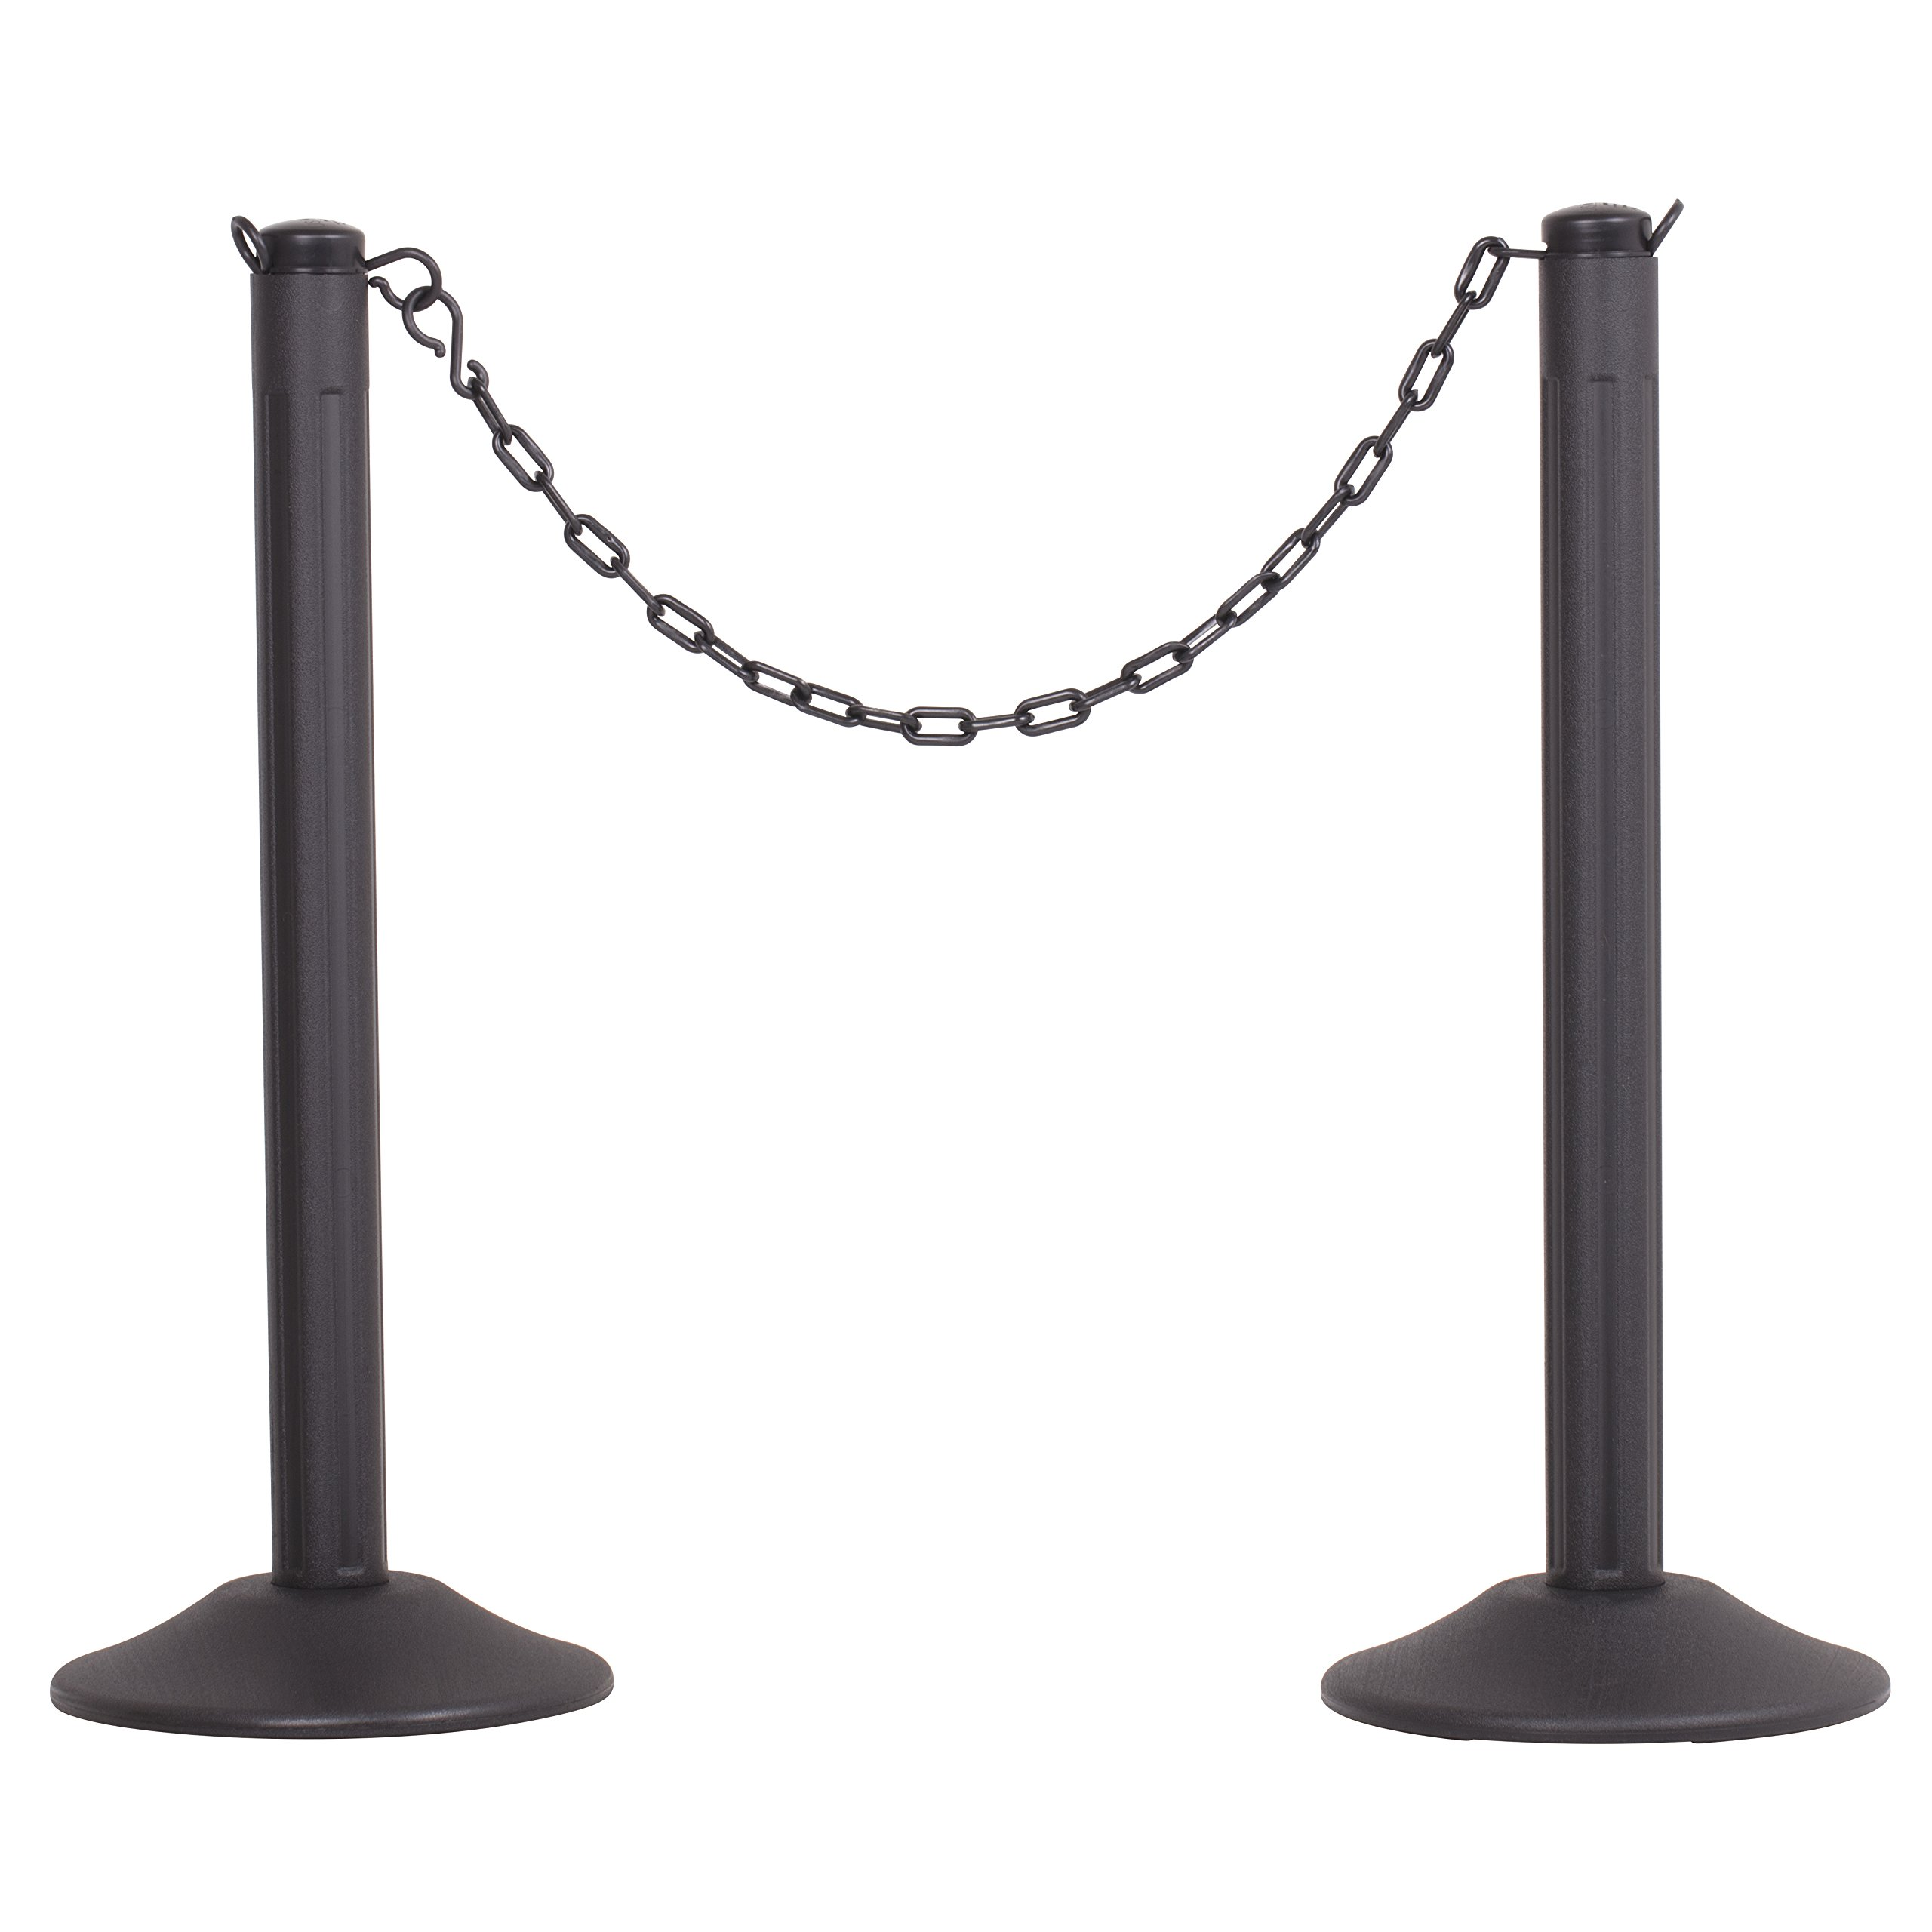 US Weight ChainBoss Outdoor/Indoor Stanchion with 10' of Plastic Chain - Fillable Base by US Weight